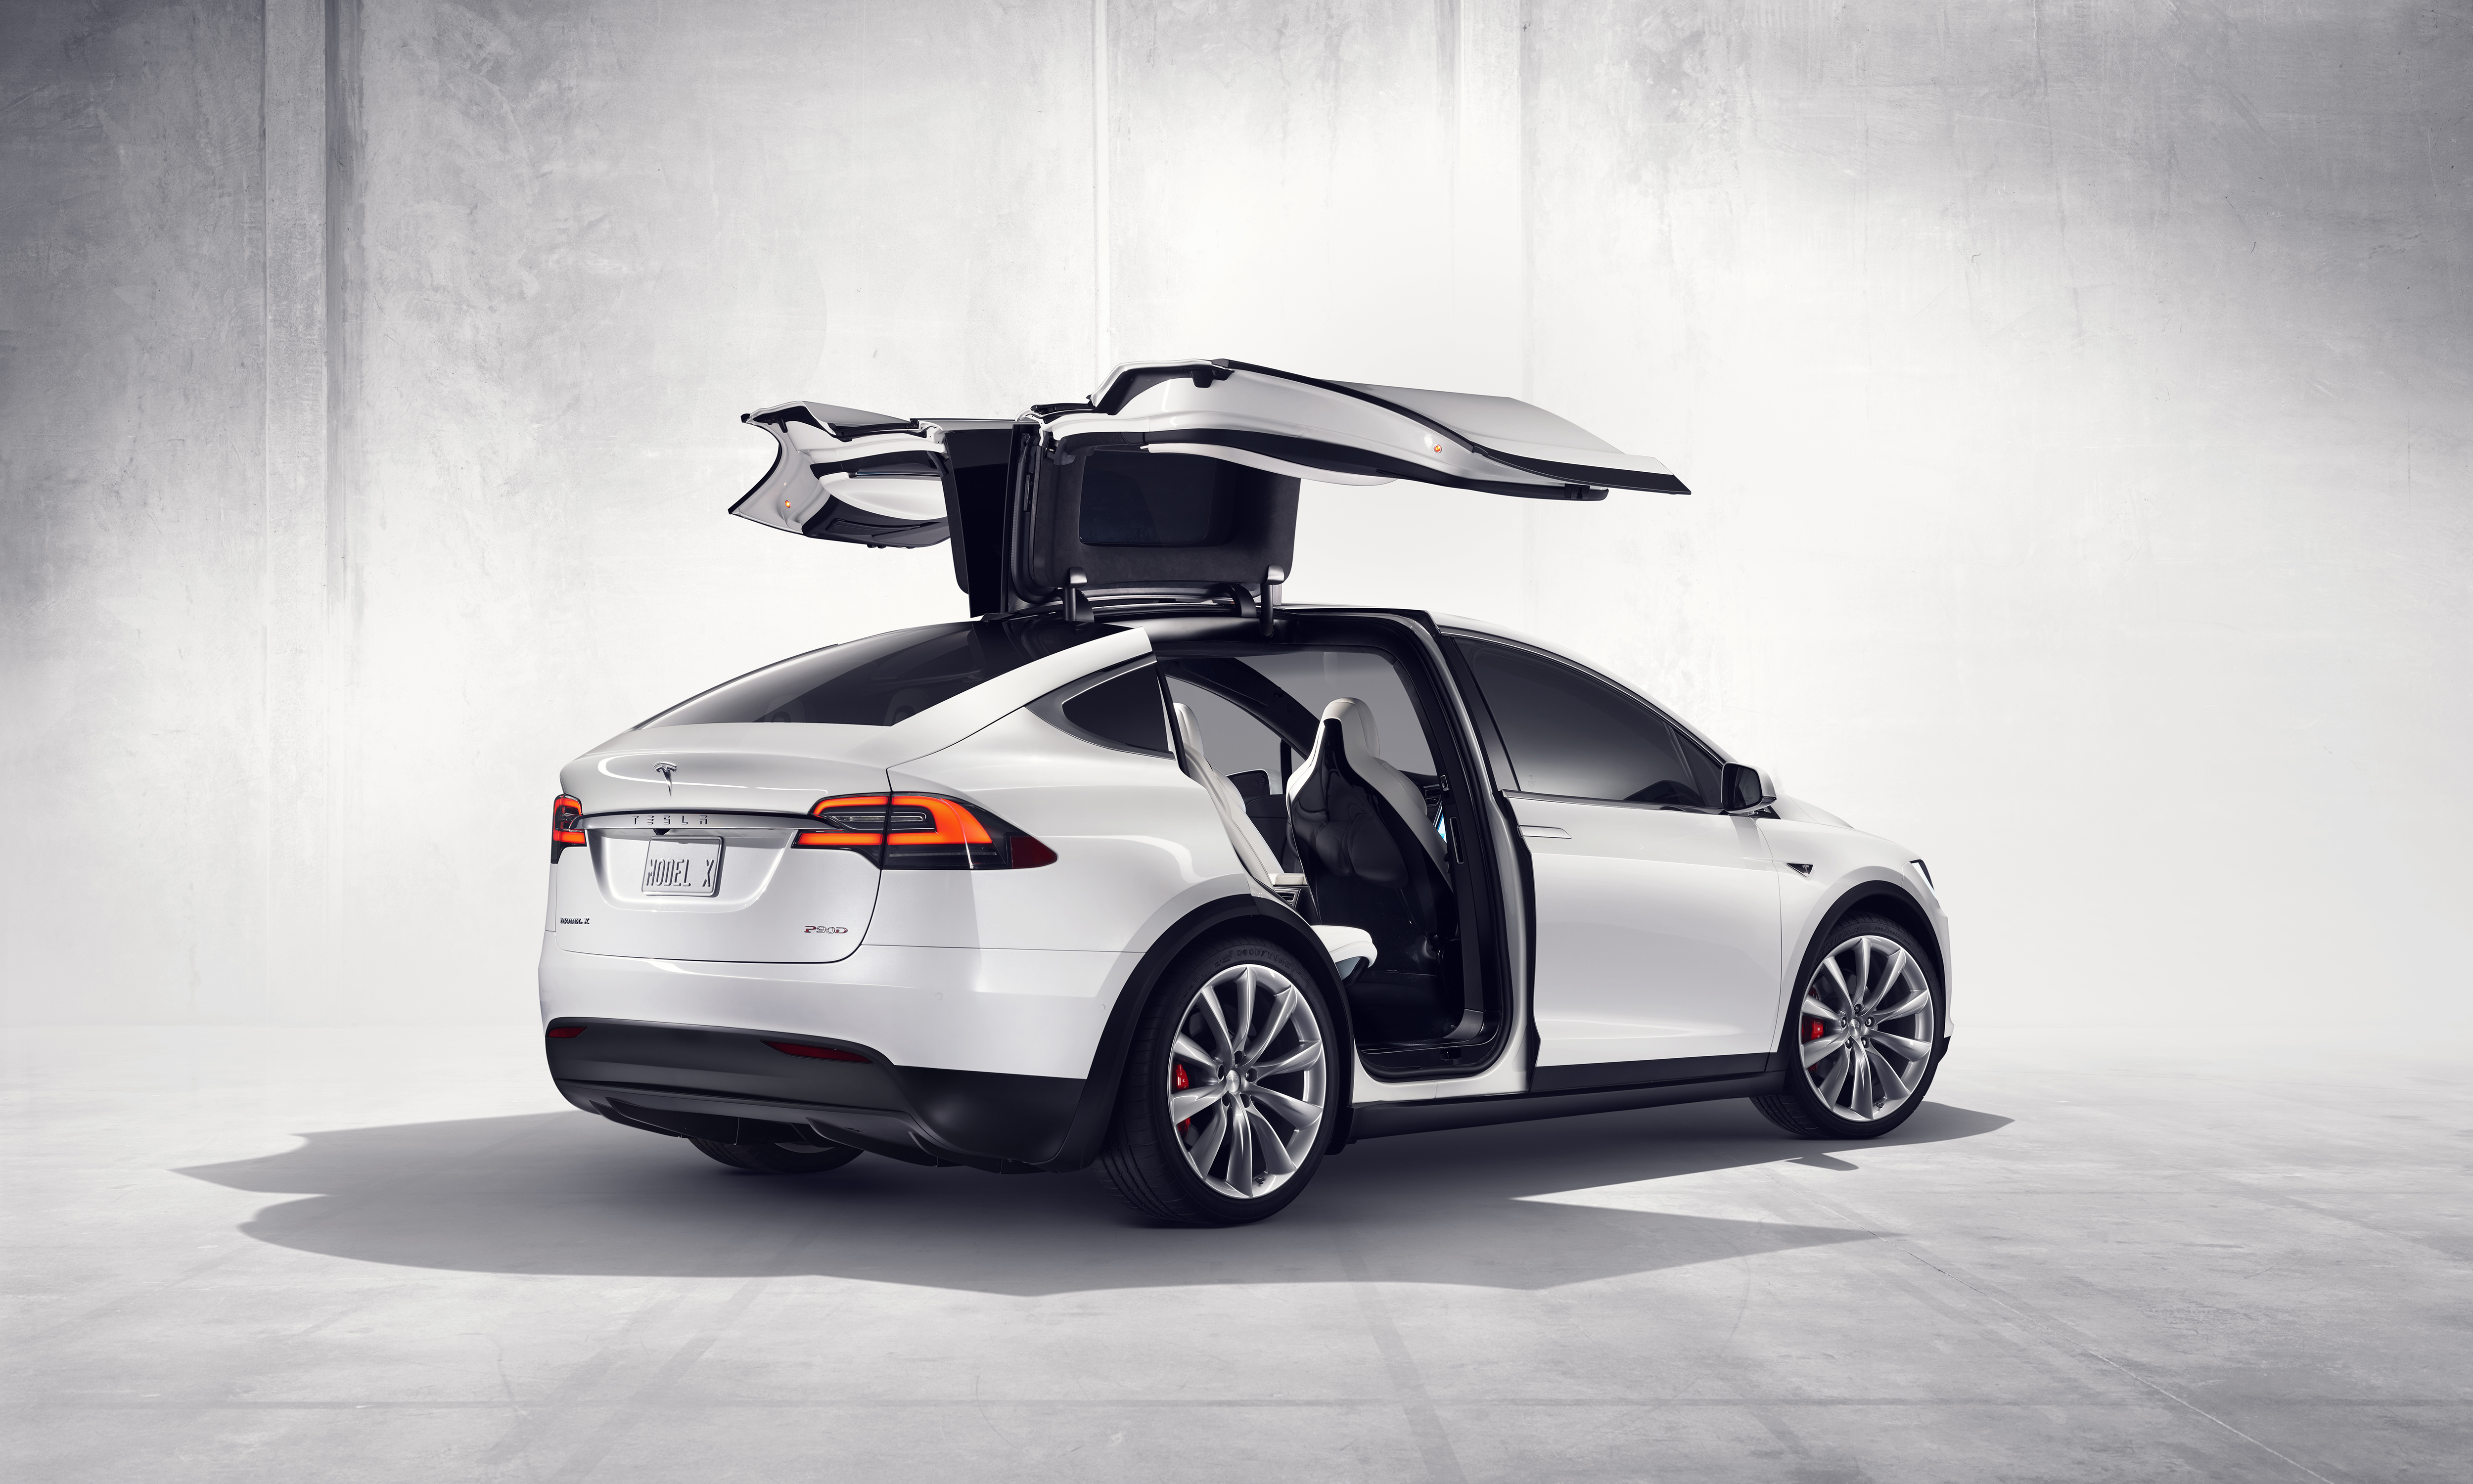 Tesla Model X Pricing Starts At $80,000